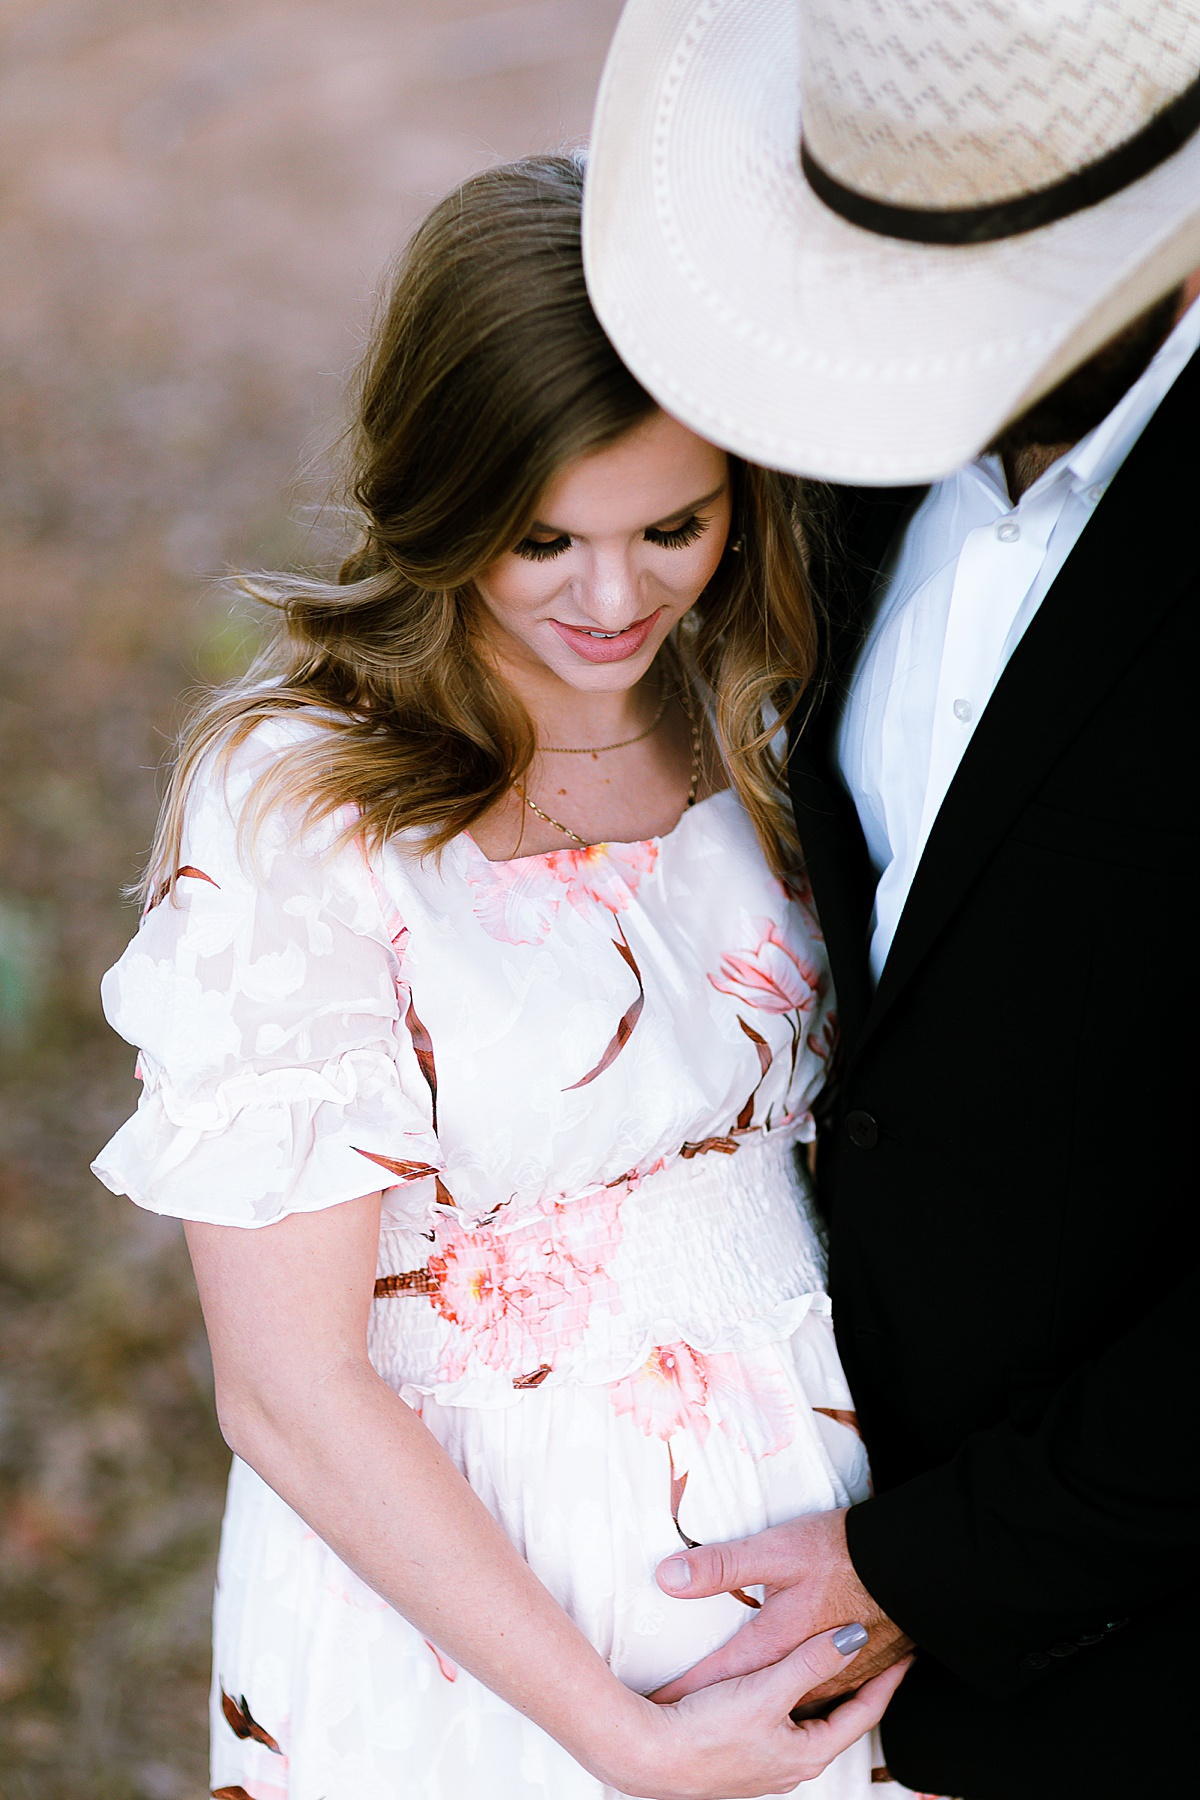 maternity-photo-session-lavernia-texas-carly-barton-photography_0011.jpg